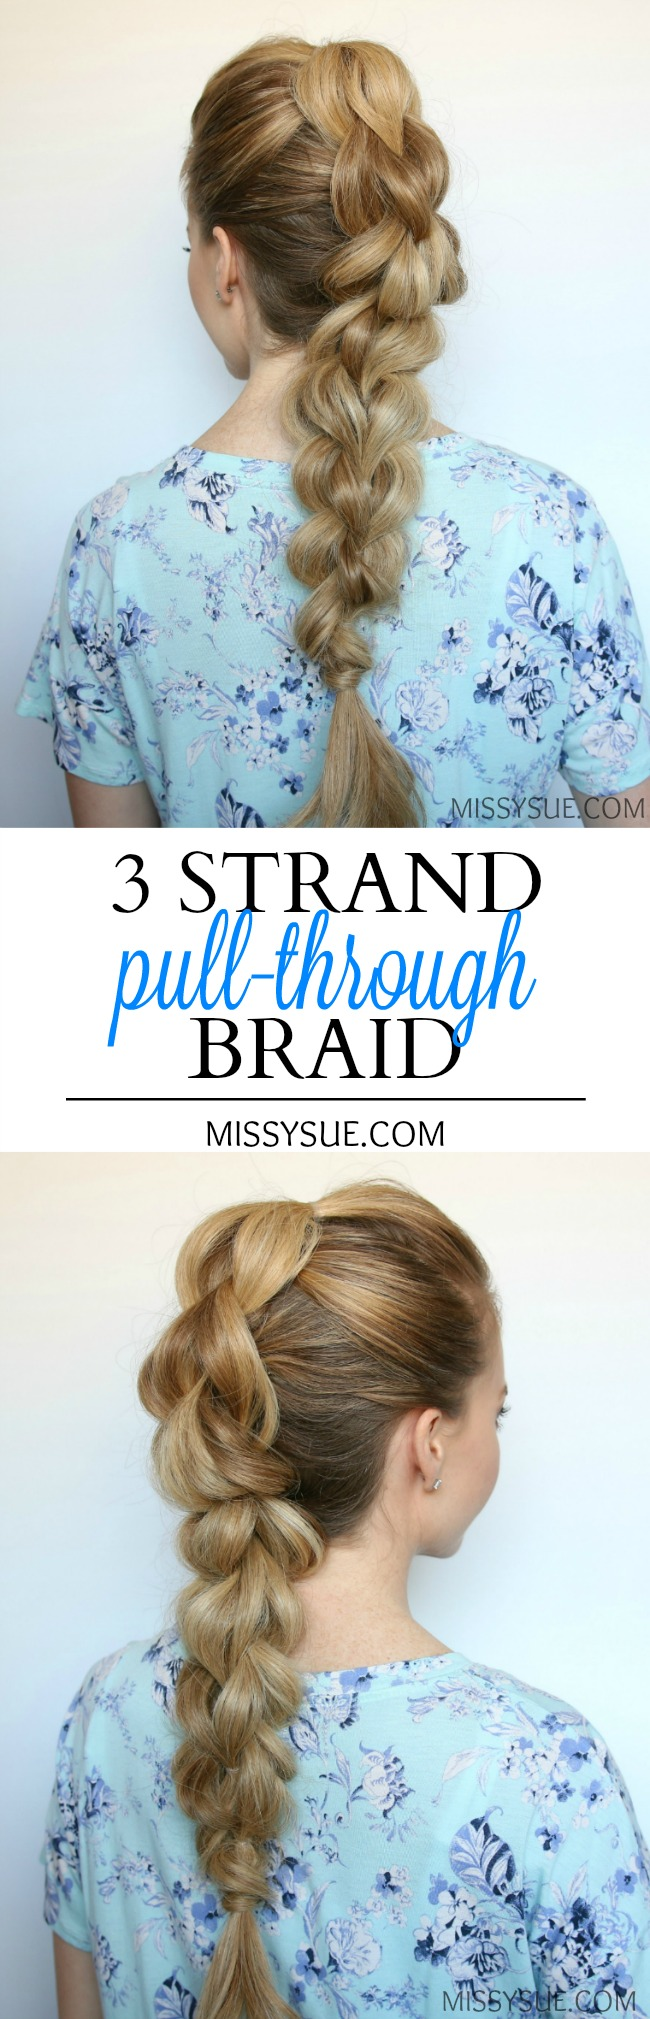 3-strand-pull-thru-braid-tutorial-missysue